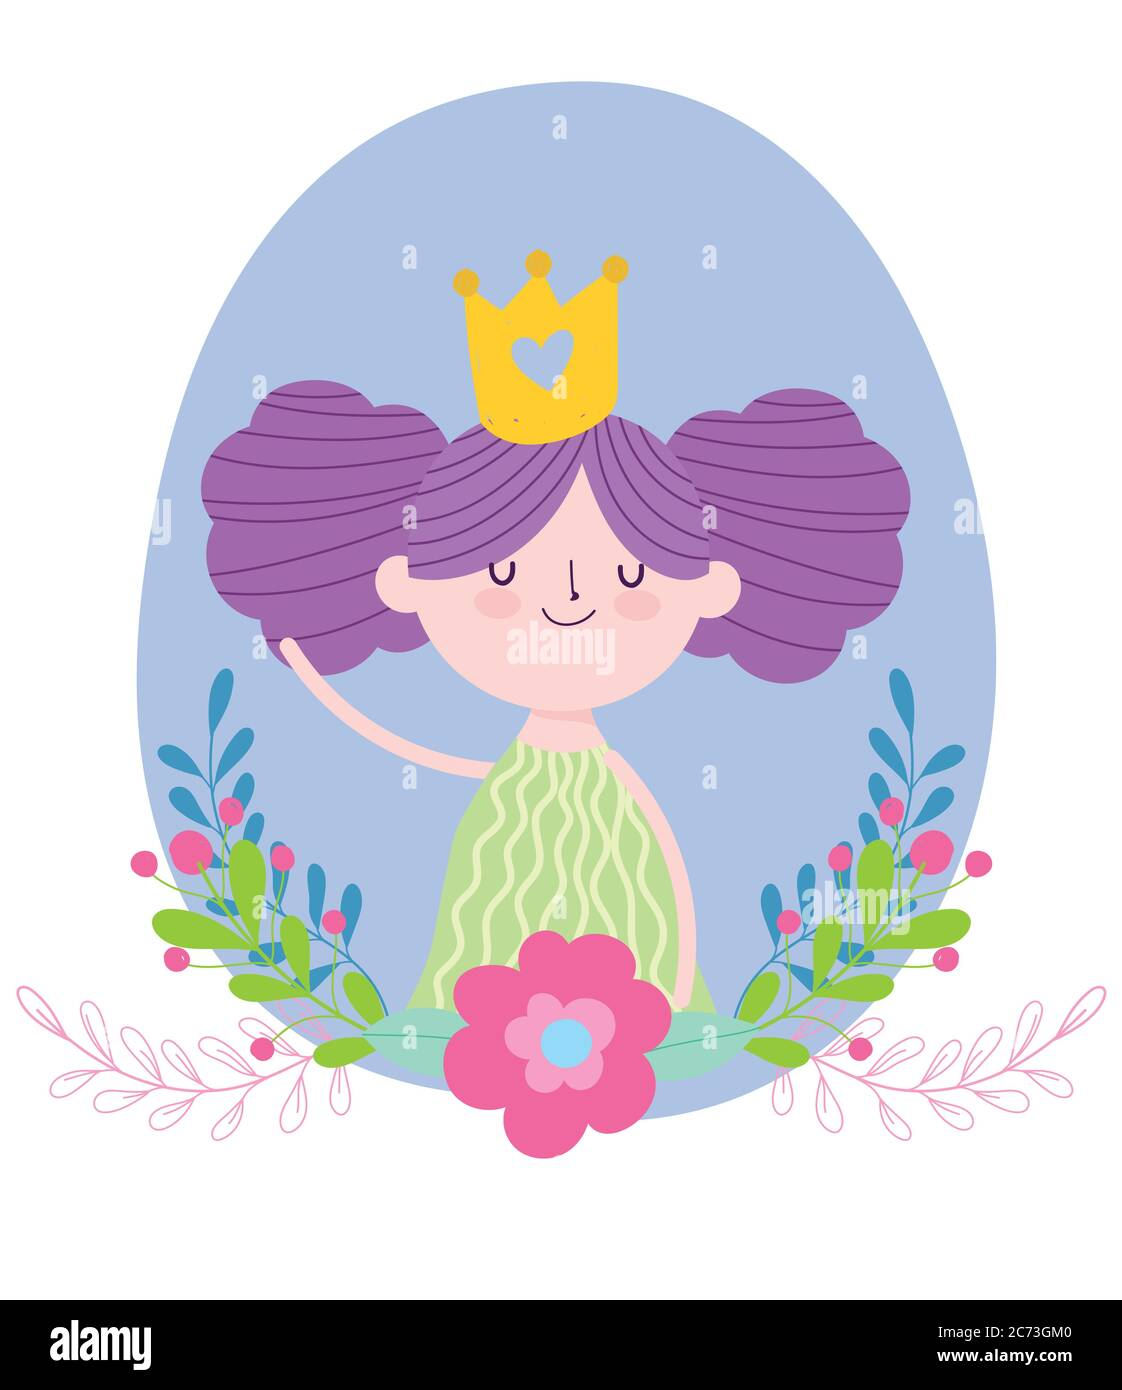 Little Fairy Princess With Gold Crown Flowers Tale Cartoon Vector Illustration Stock Vector Image Art Alamy Free cartoon crown, download free clip art, free clip art. alamy